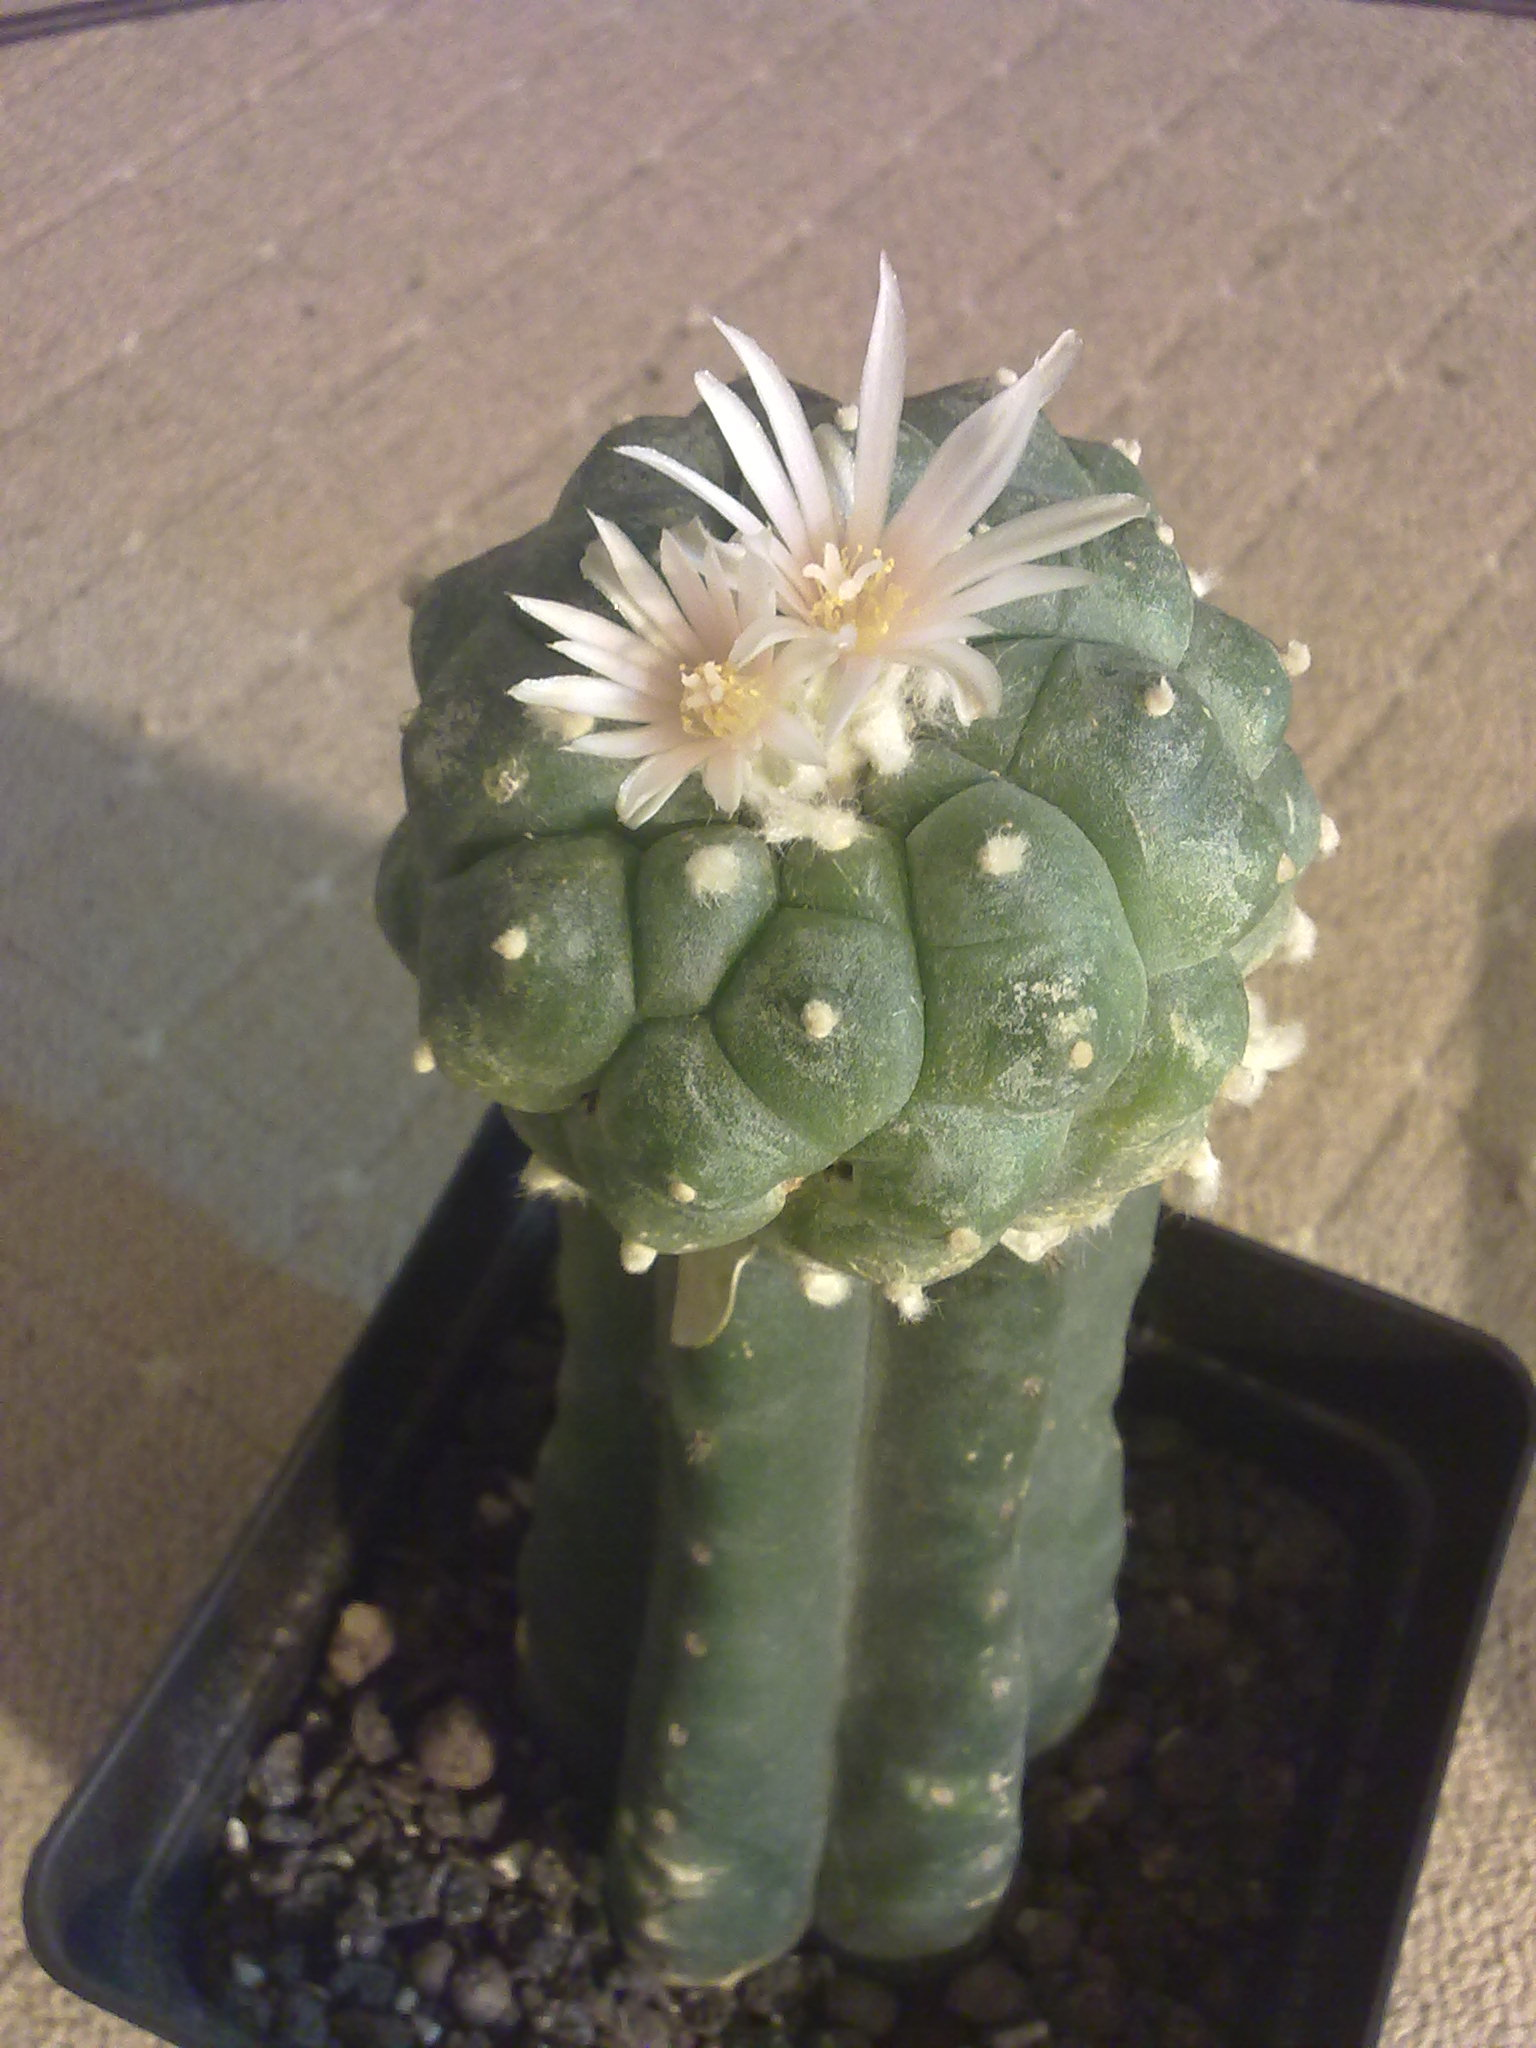 My Guide To Help Lophophora Growers At Humid Cold Climate